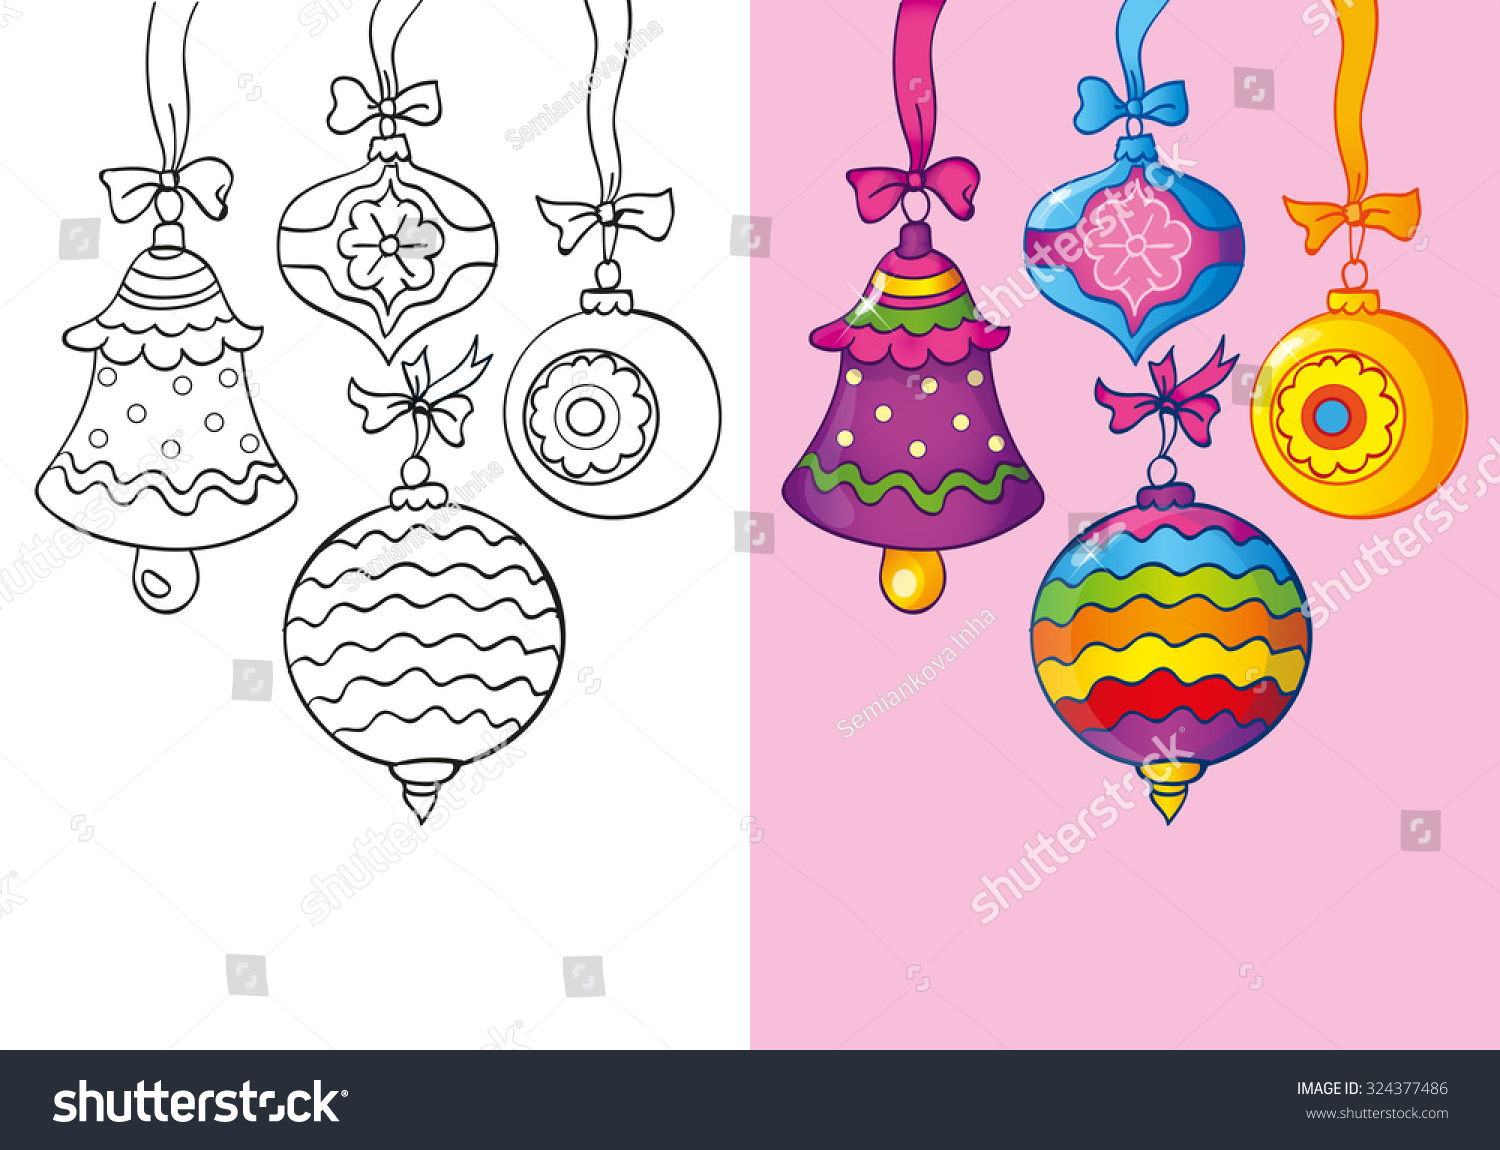 Coloring Book Or Cartoon Illustration Of Christmas Decorations For Children